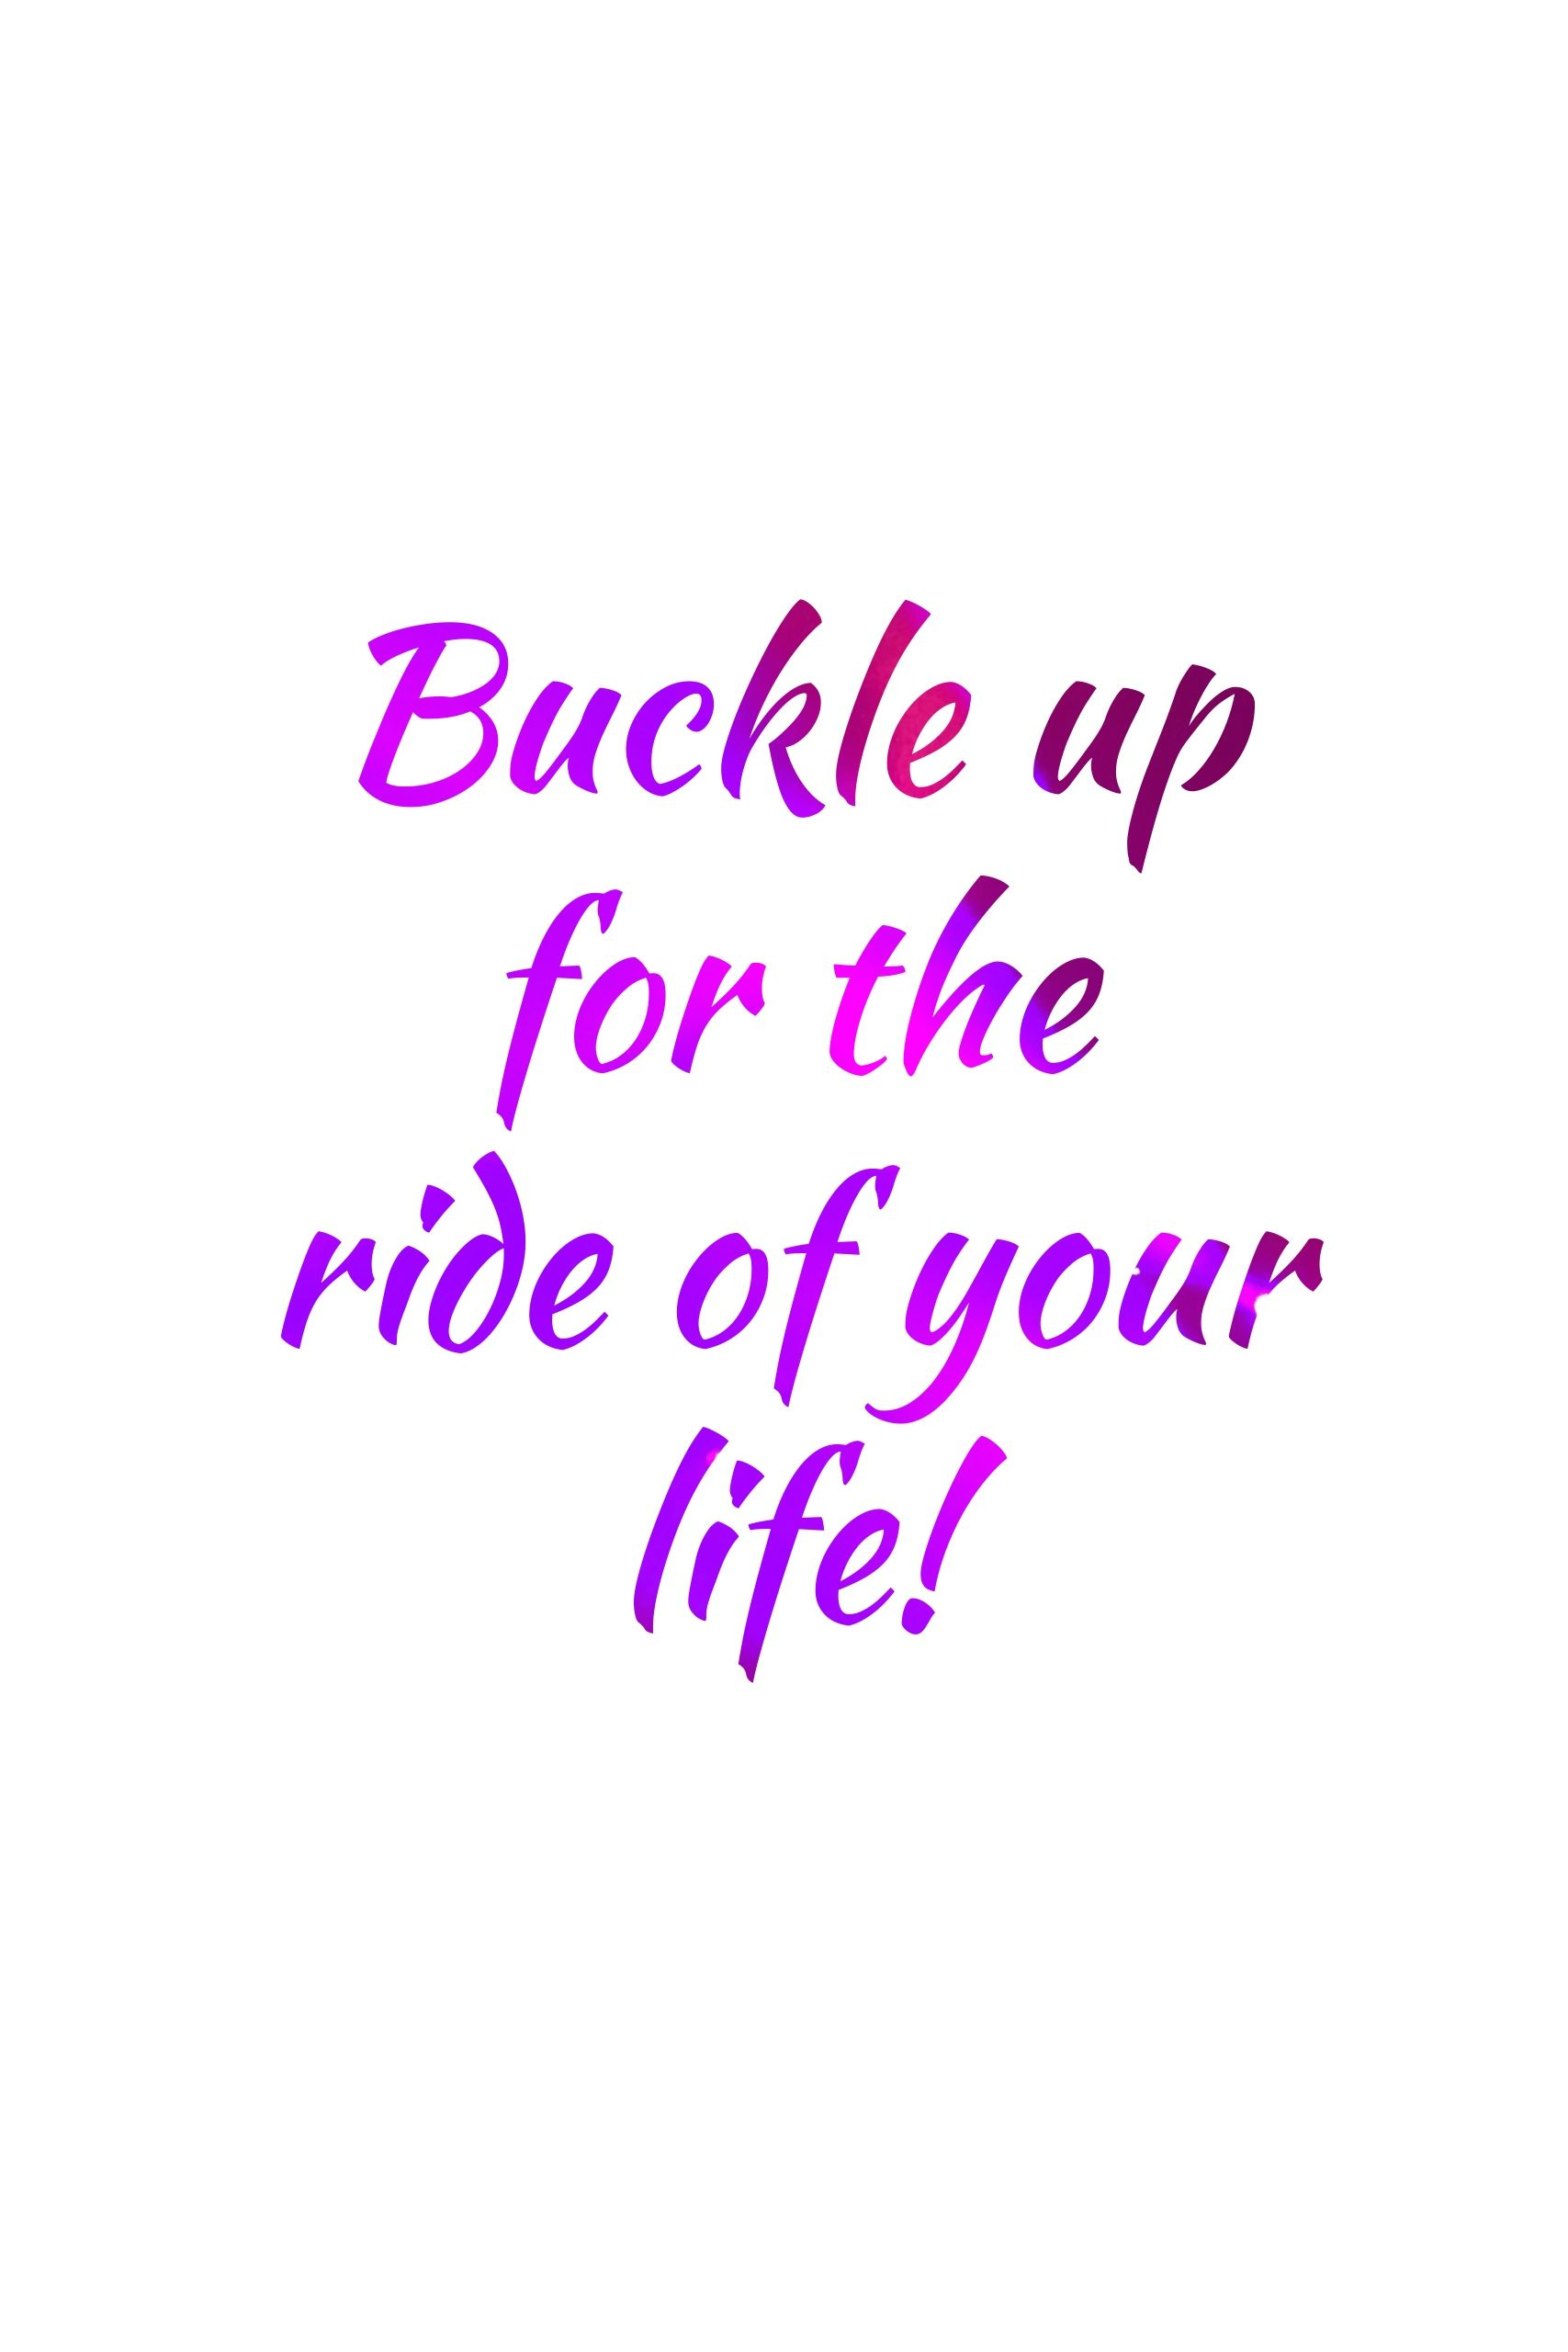 Communication on this topic: The Ride of Your Life, the-ride-of-your-life/